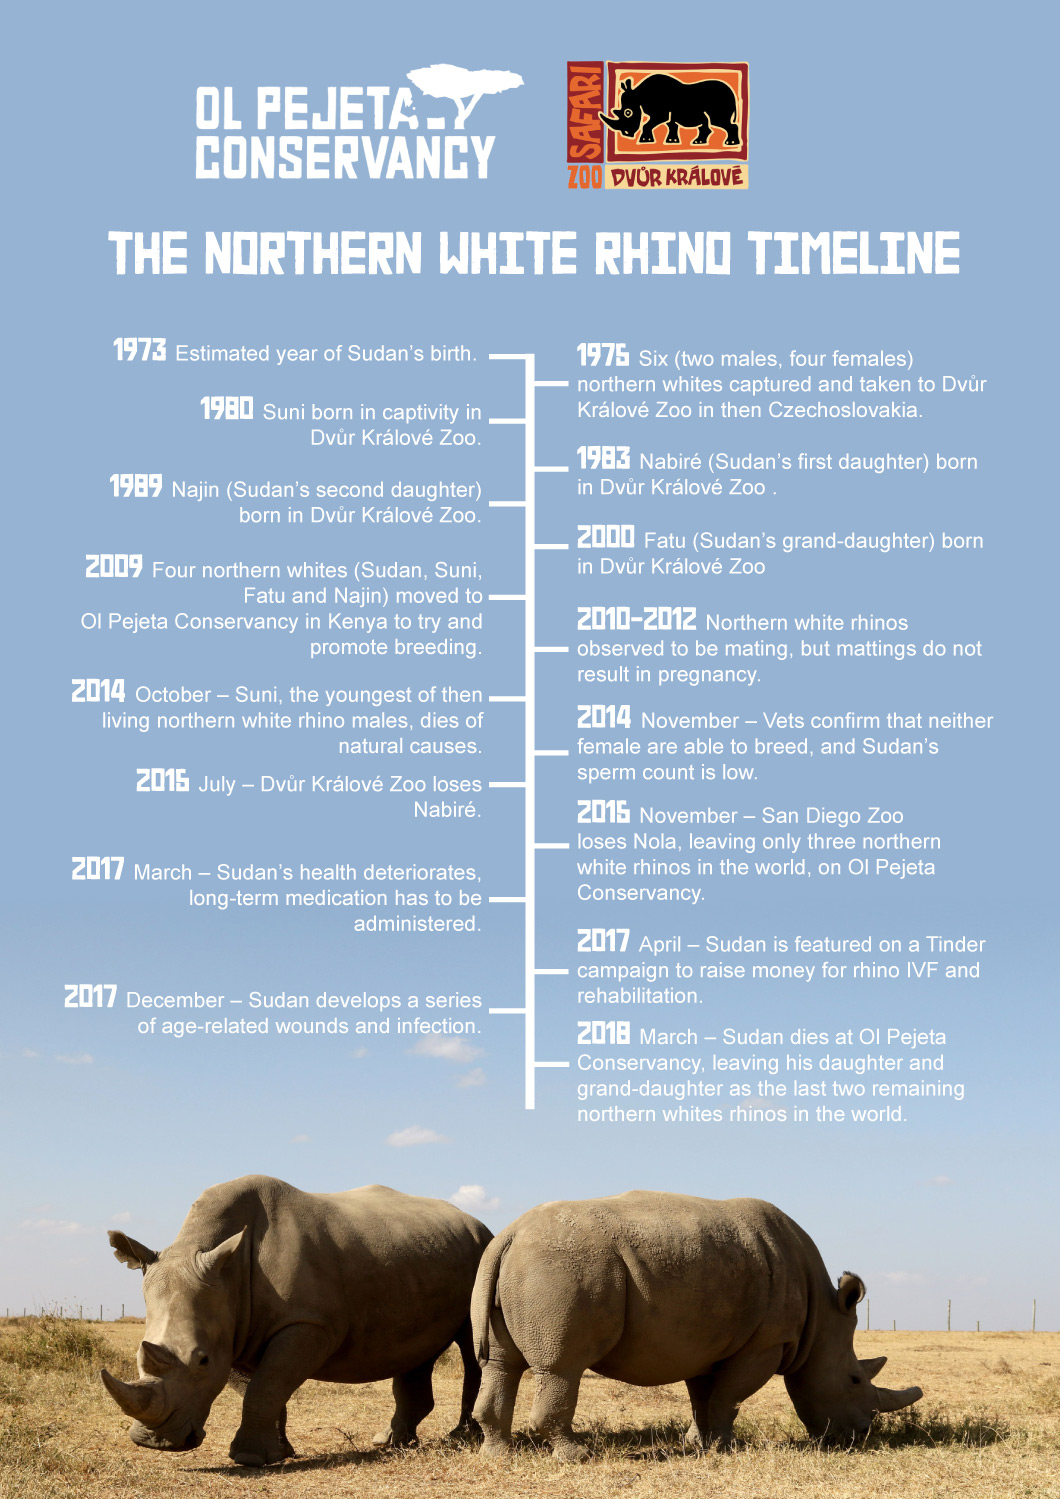 Sudan Timeline of Events